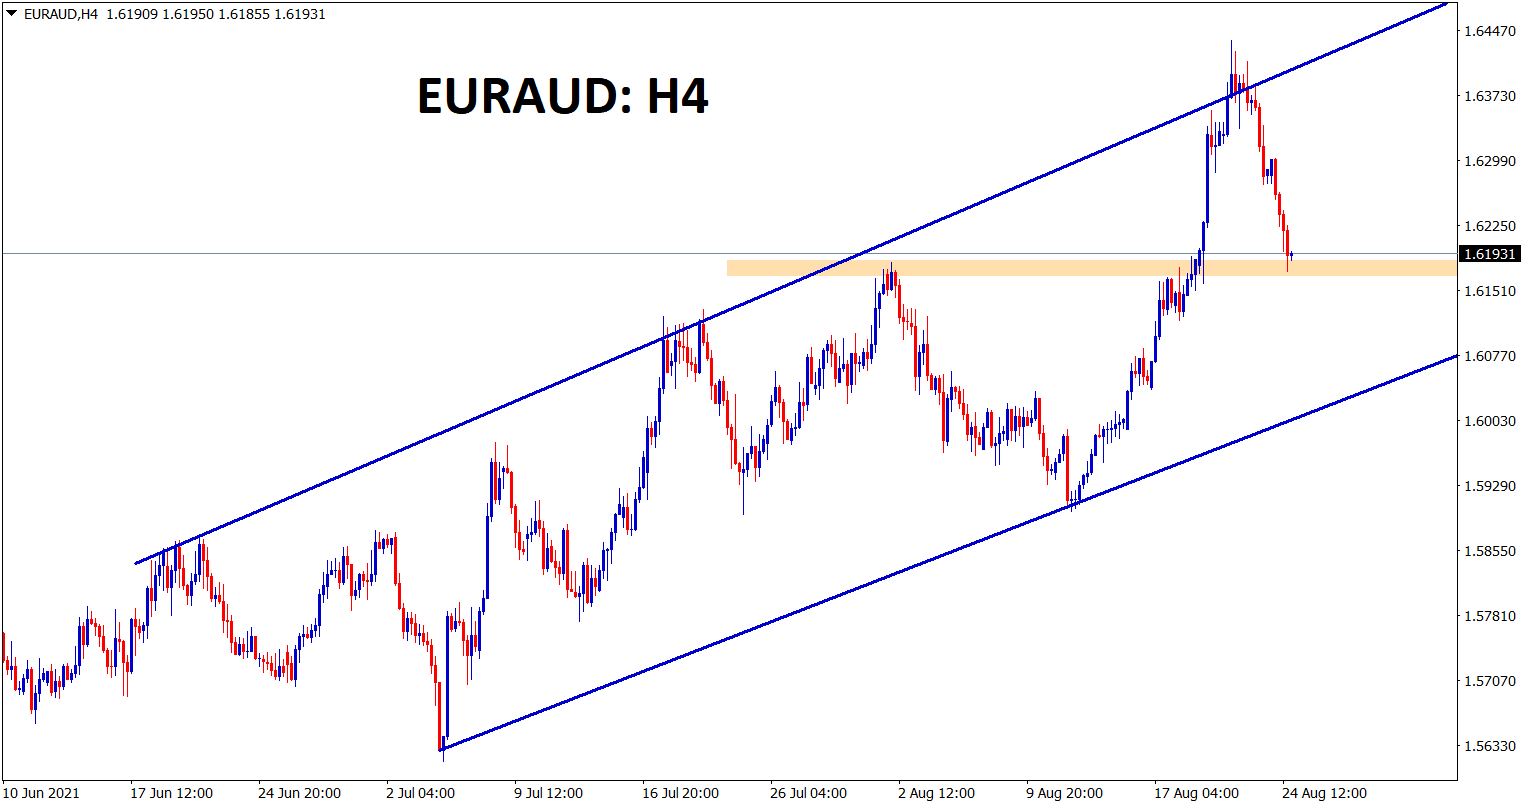 EURAUD hits the previous resistance zone which might act as a temporary support for correction. Overall euraud is in uptrend now